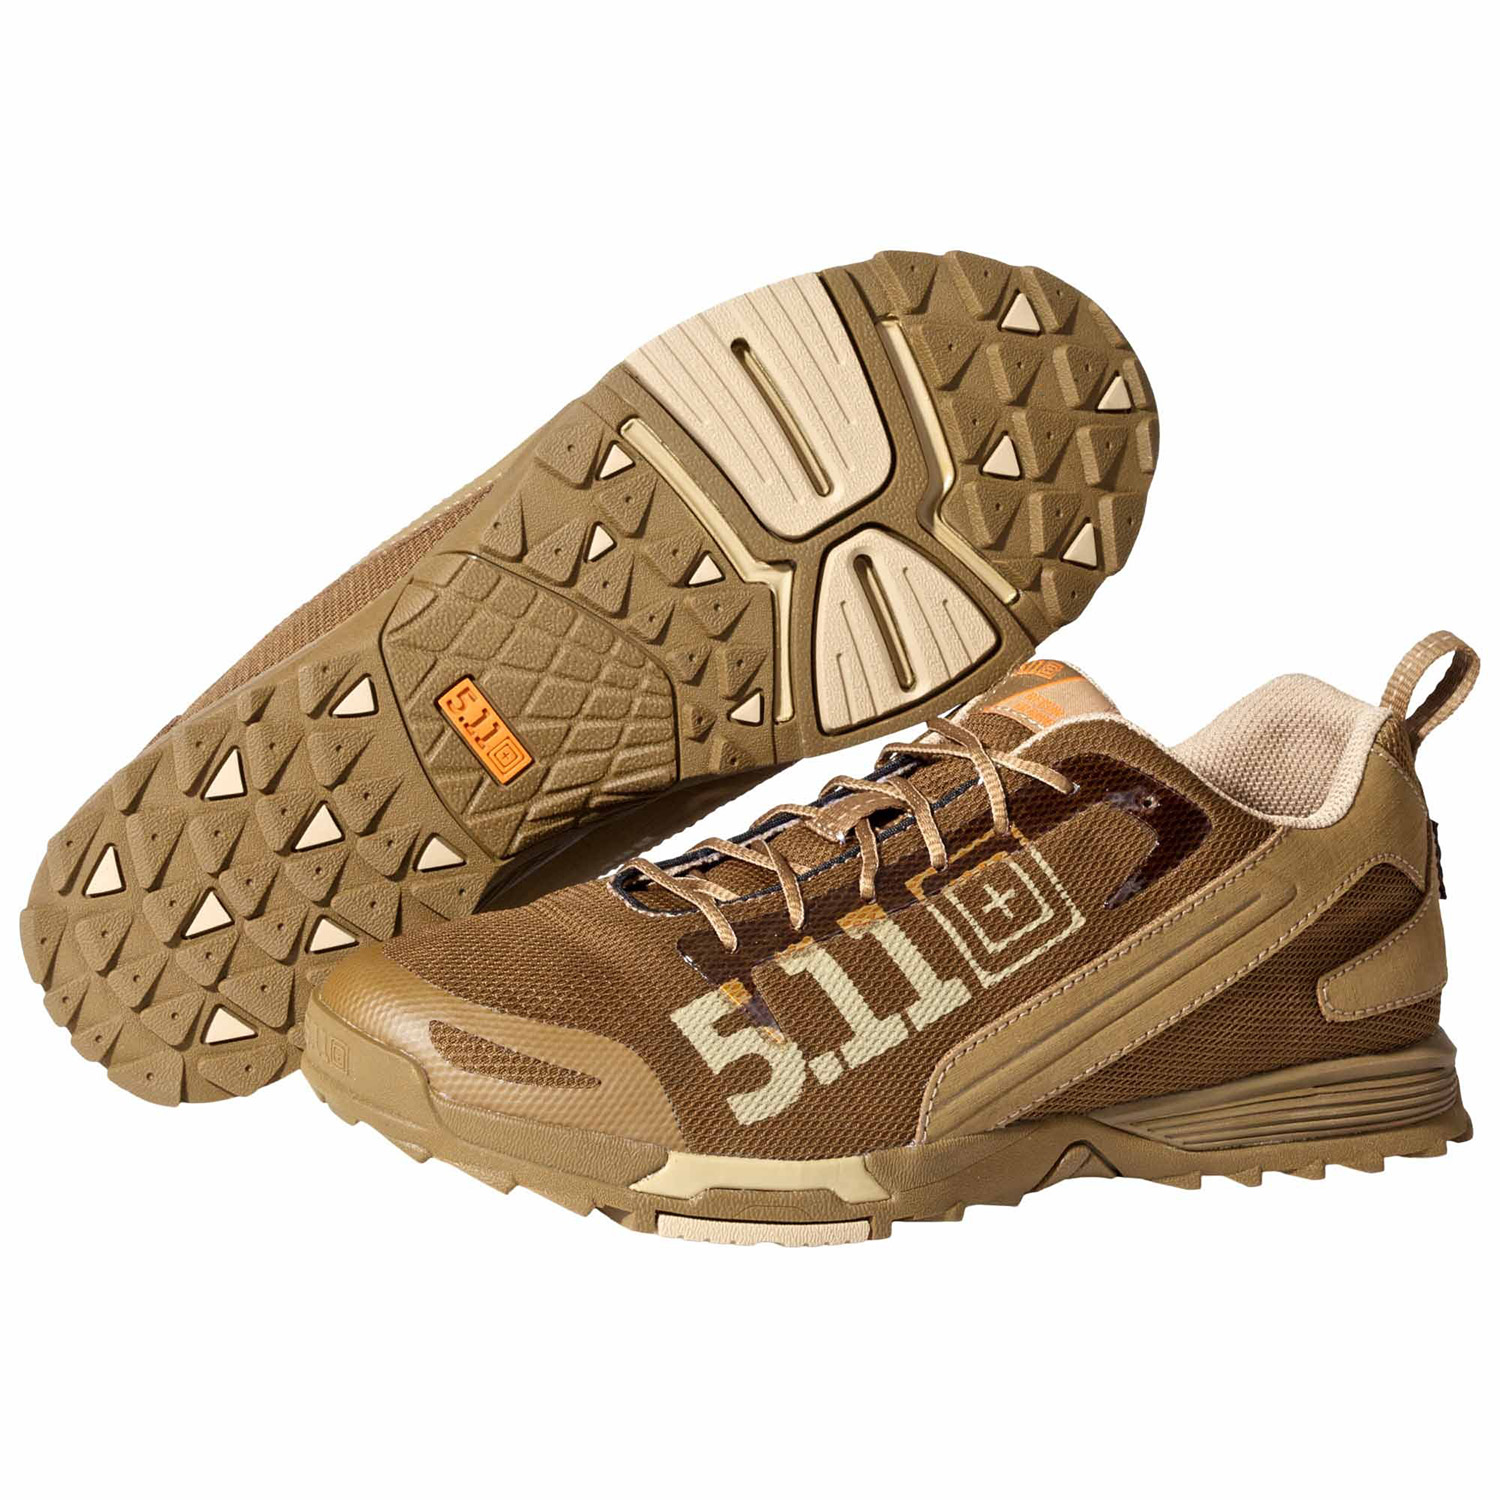 5-11-Recon-Trainer-Lightweight-Athletic-Running-Fitness-Shoes-16001 thumbnail 6